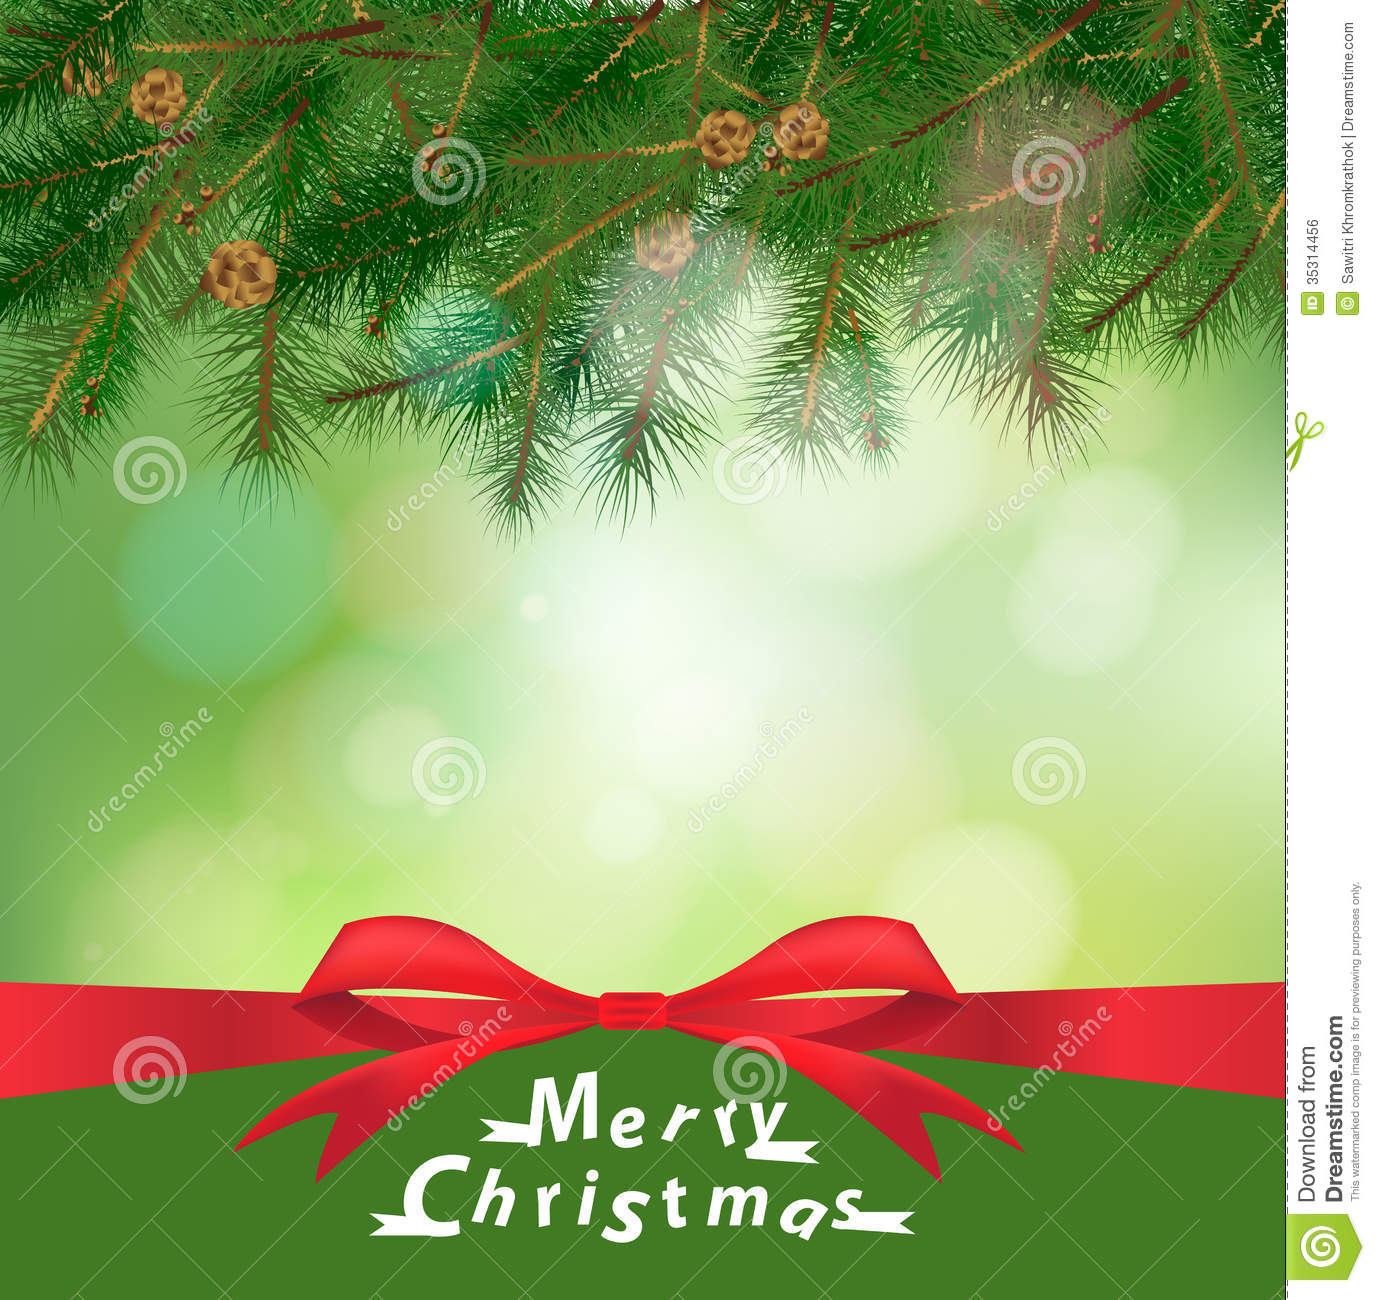 Xmas Invitation Templates for good invitations example